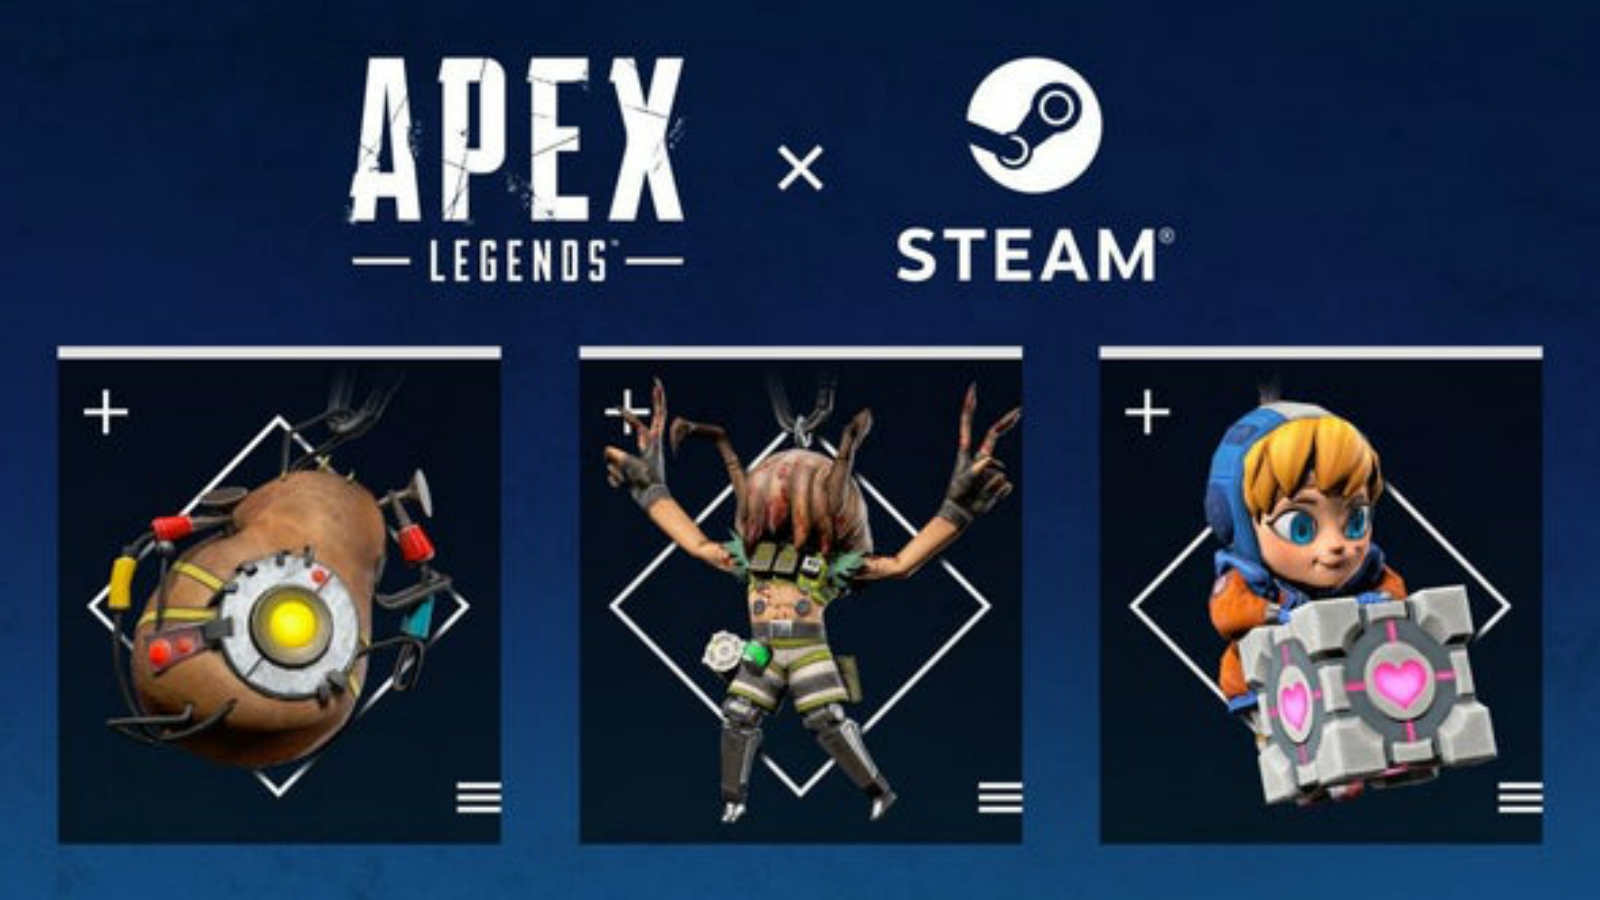 Three steam weapon charms for Apex Legends